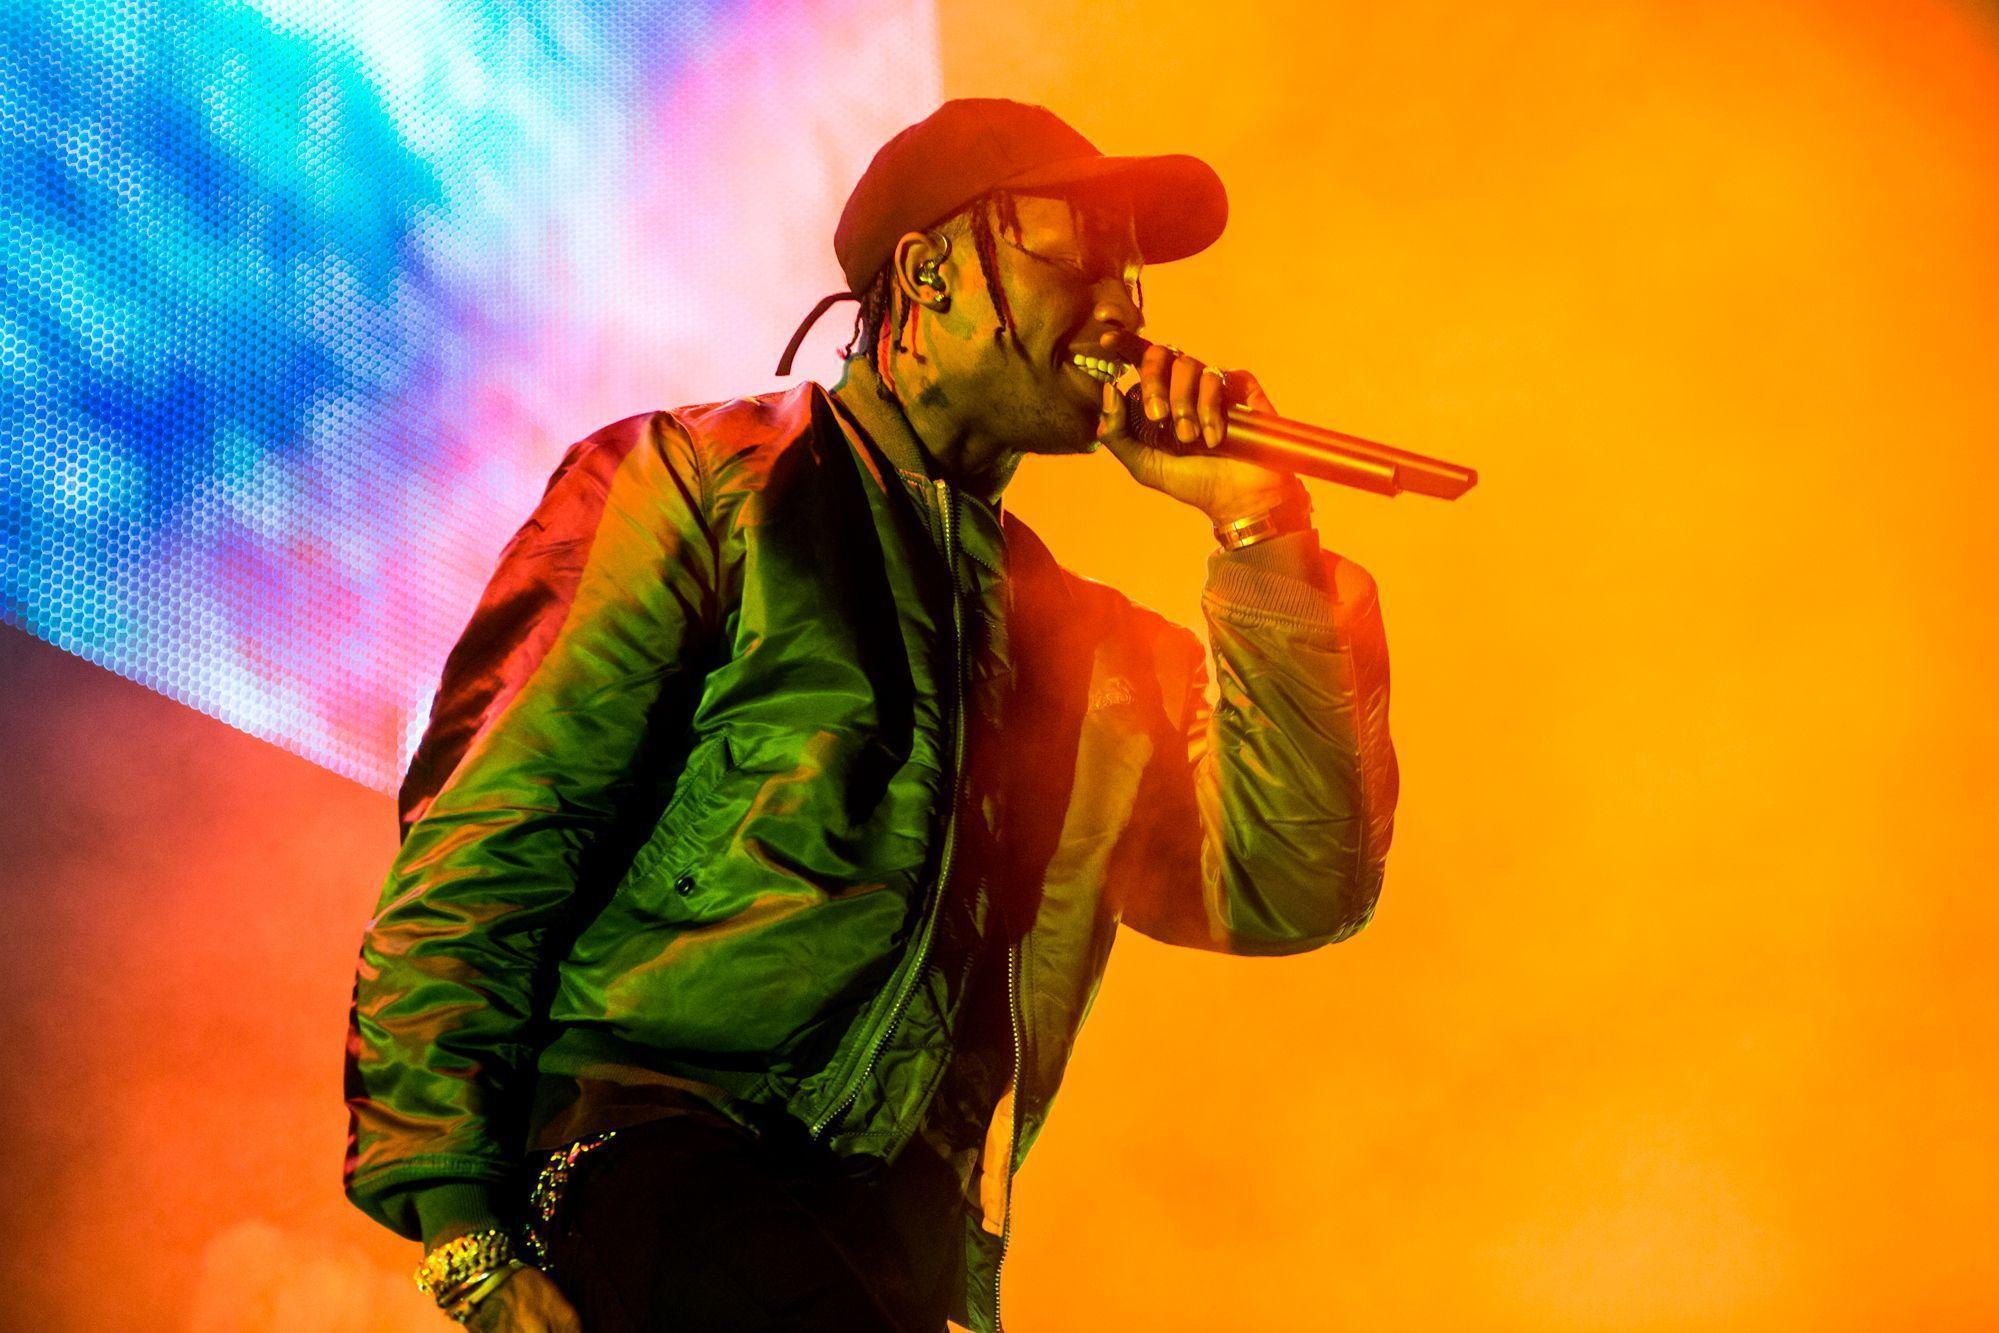 travis scott hd